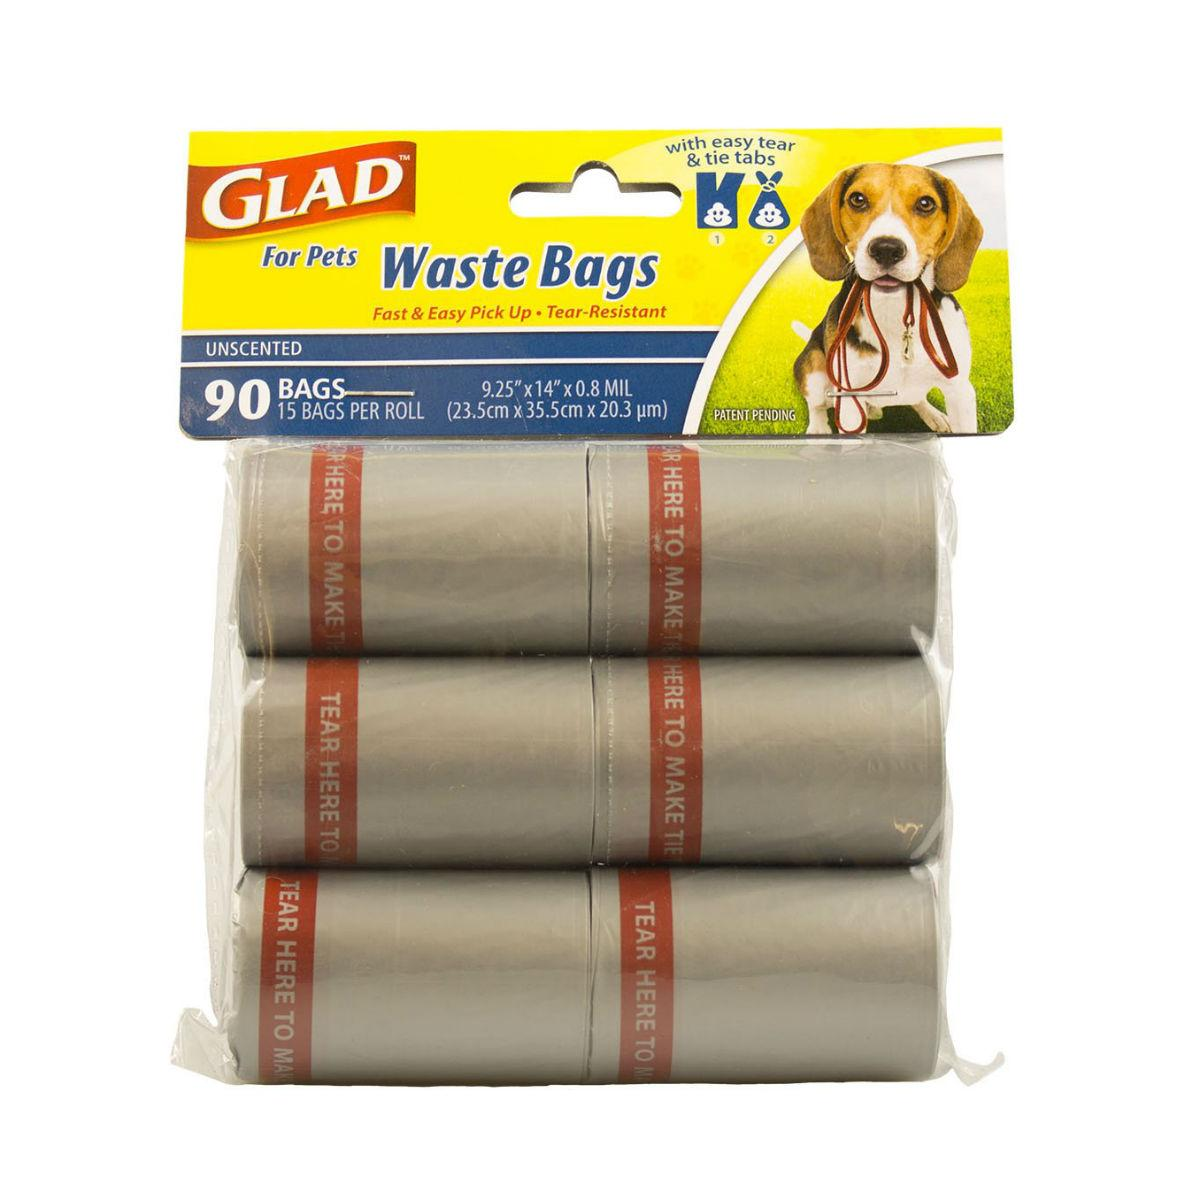 Glad for Pets Extra Large Unscented Dog Waste Bags Refills - 90 Count